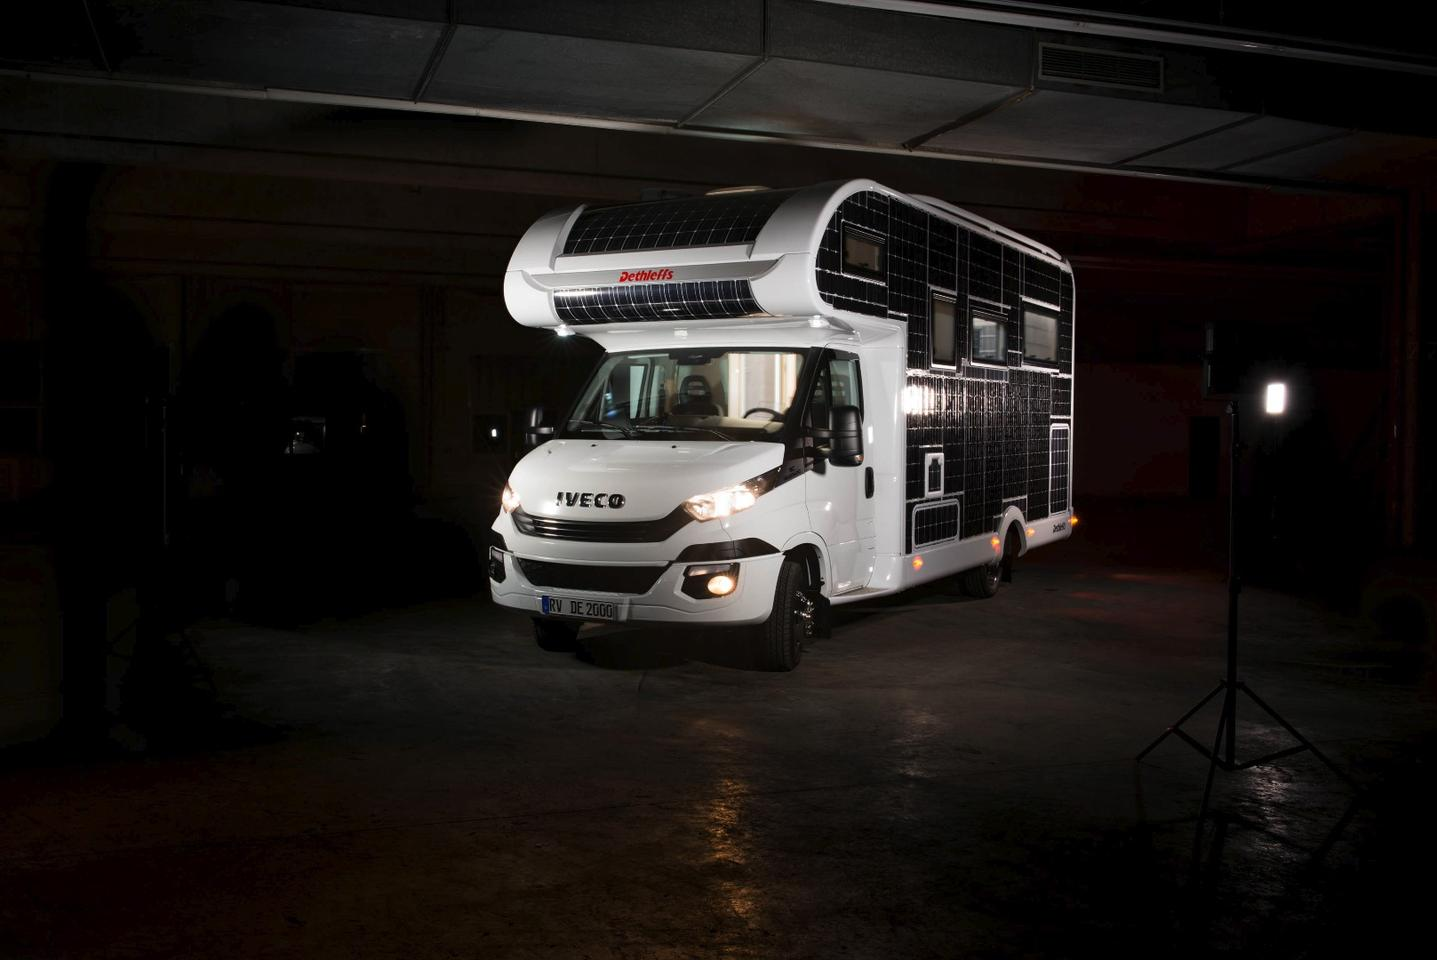 Dethleffs plays with the concept of an all-electric Type C motorhome